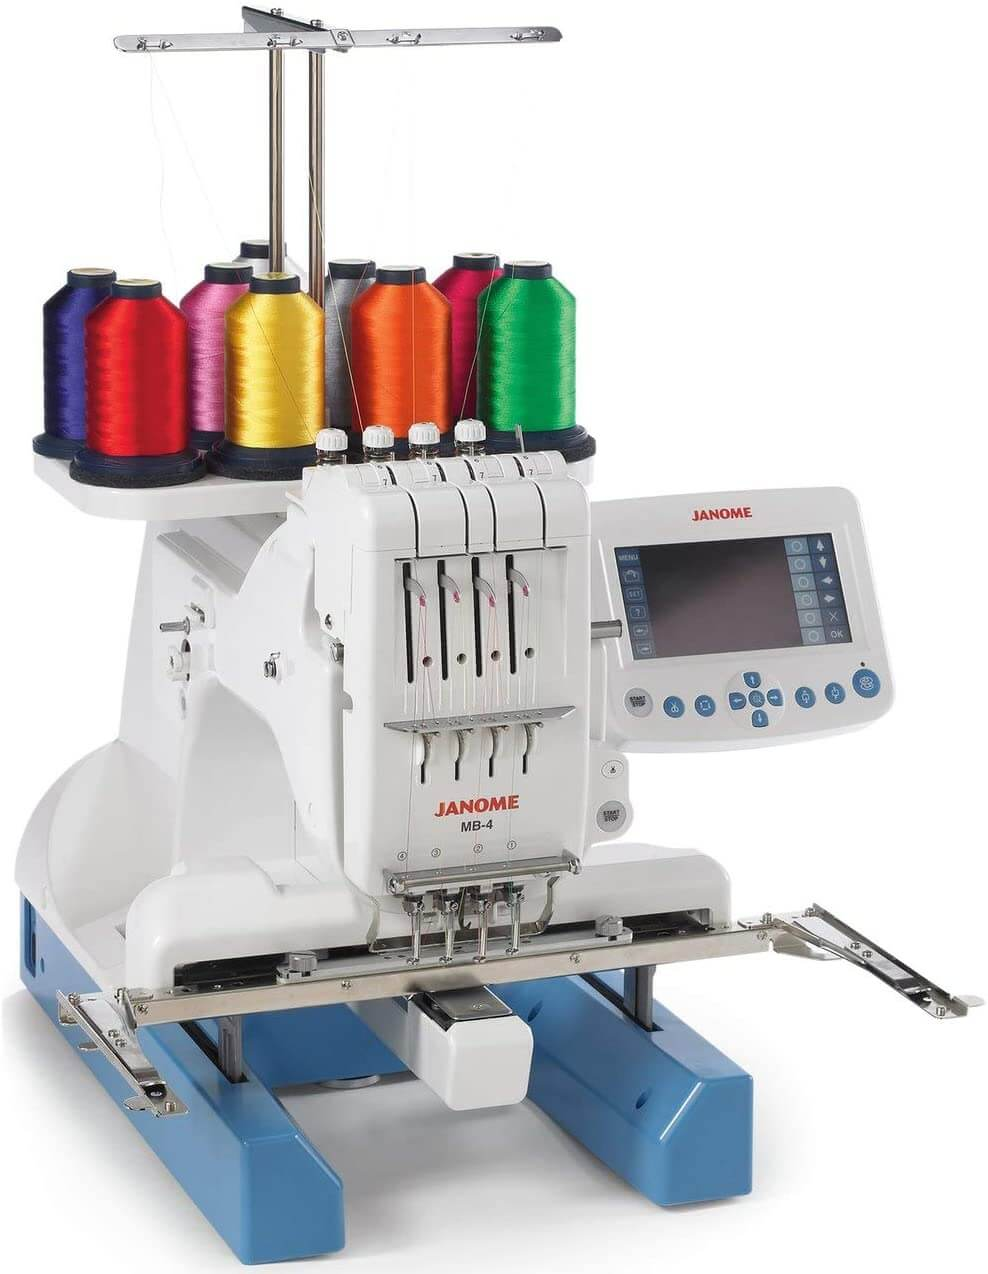 Janome MB-4N Four Needle Industrial Embroidery Machine